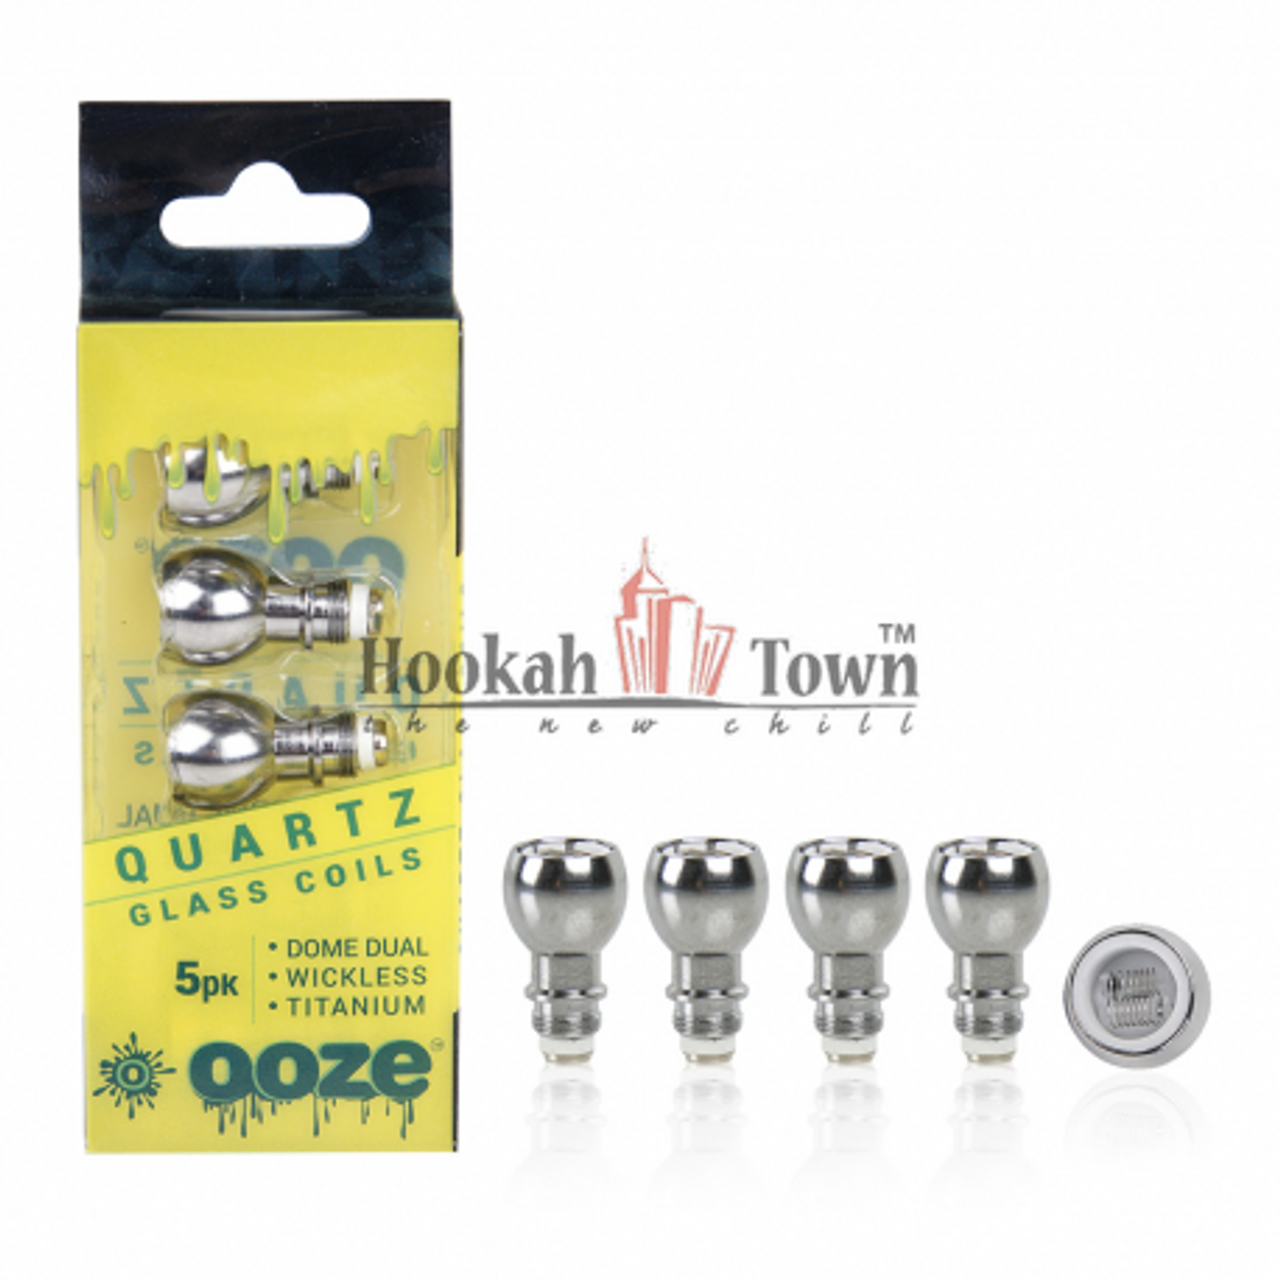 5 Pack Dome Dual QUARTZ Coils